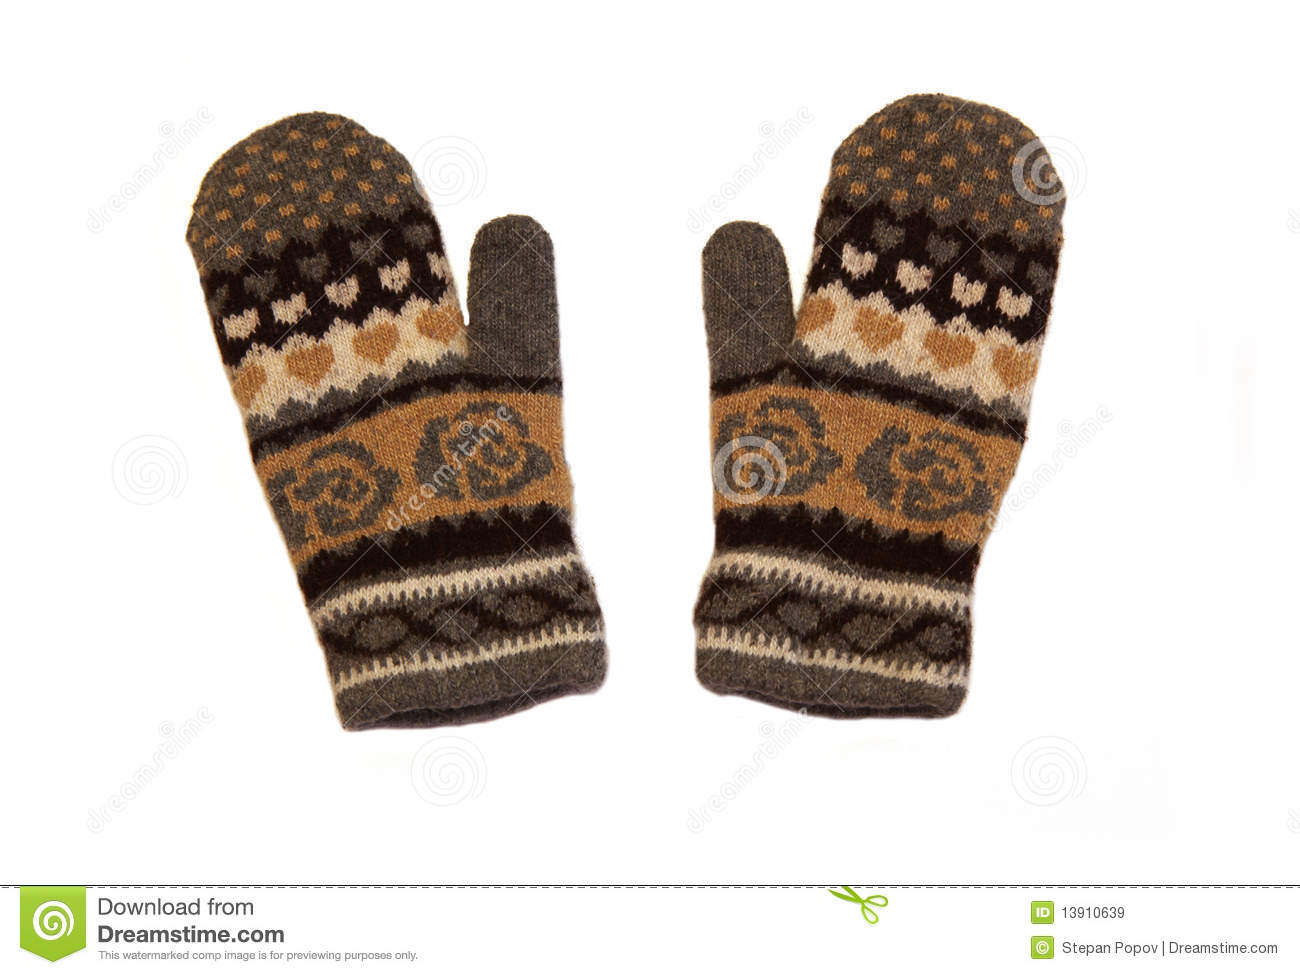 Knitting Pattern Boxing Gloves : Knitted Gloves Royalty Free Stock Images - Image: 13910639